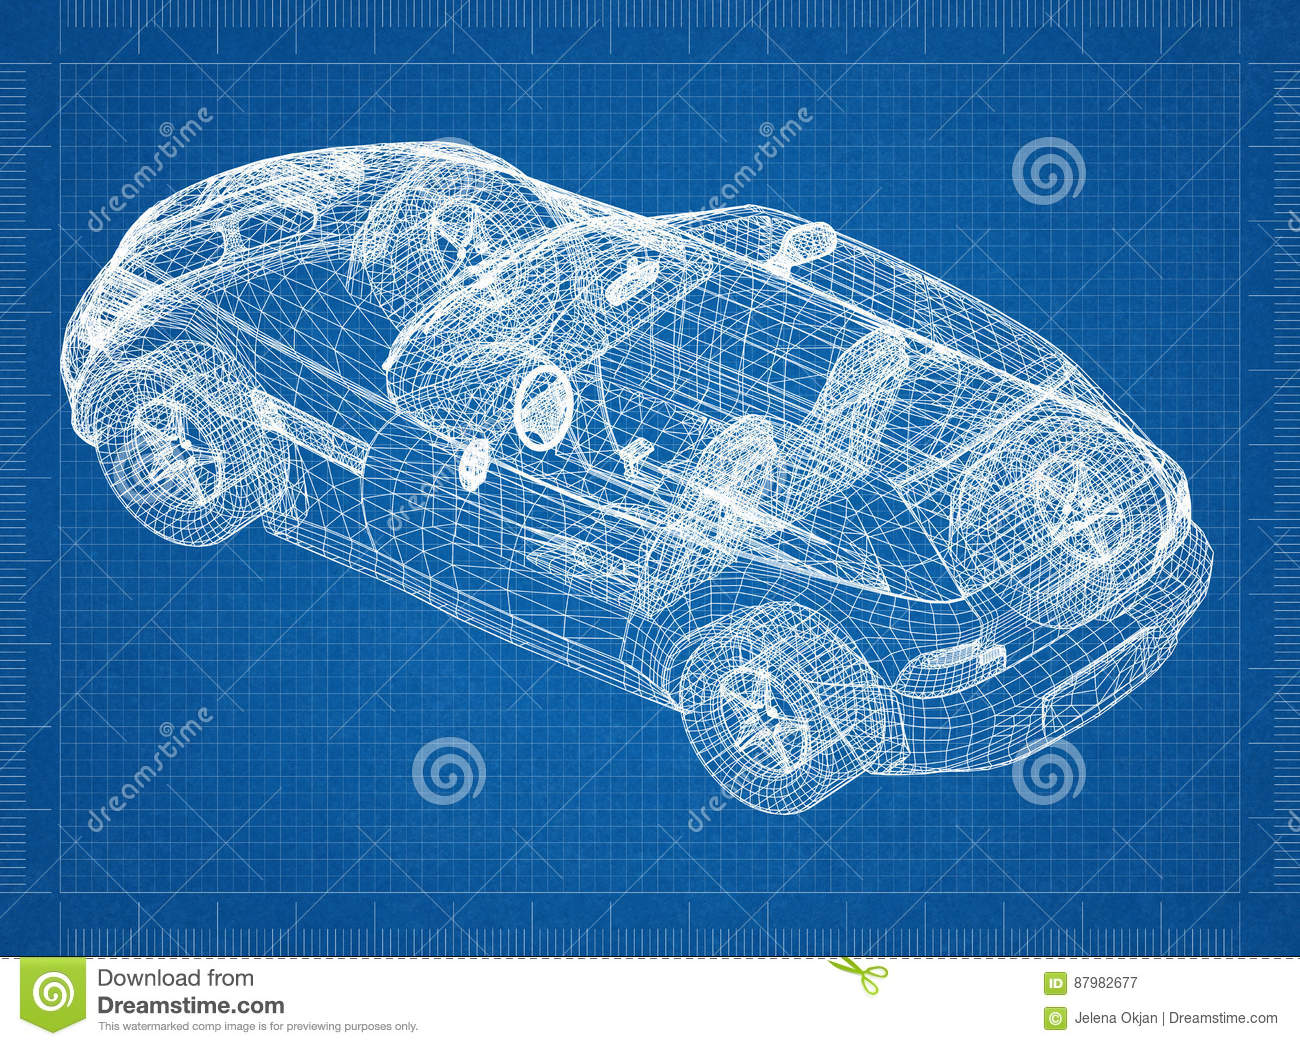 Car engine wireframe technical draw stock illustration concept car blueprint 3d perspective royalty free stock photography malvernweather Images